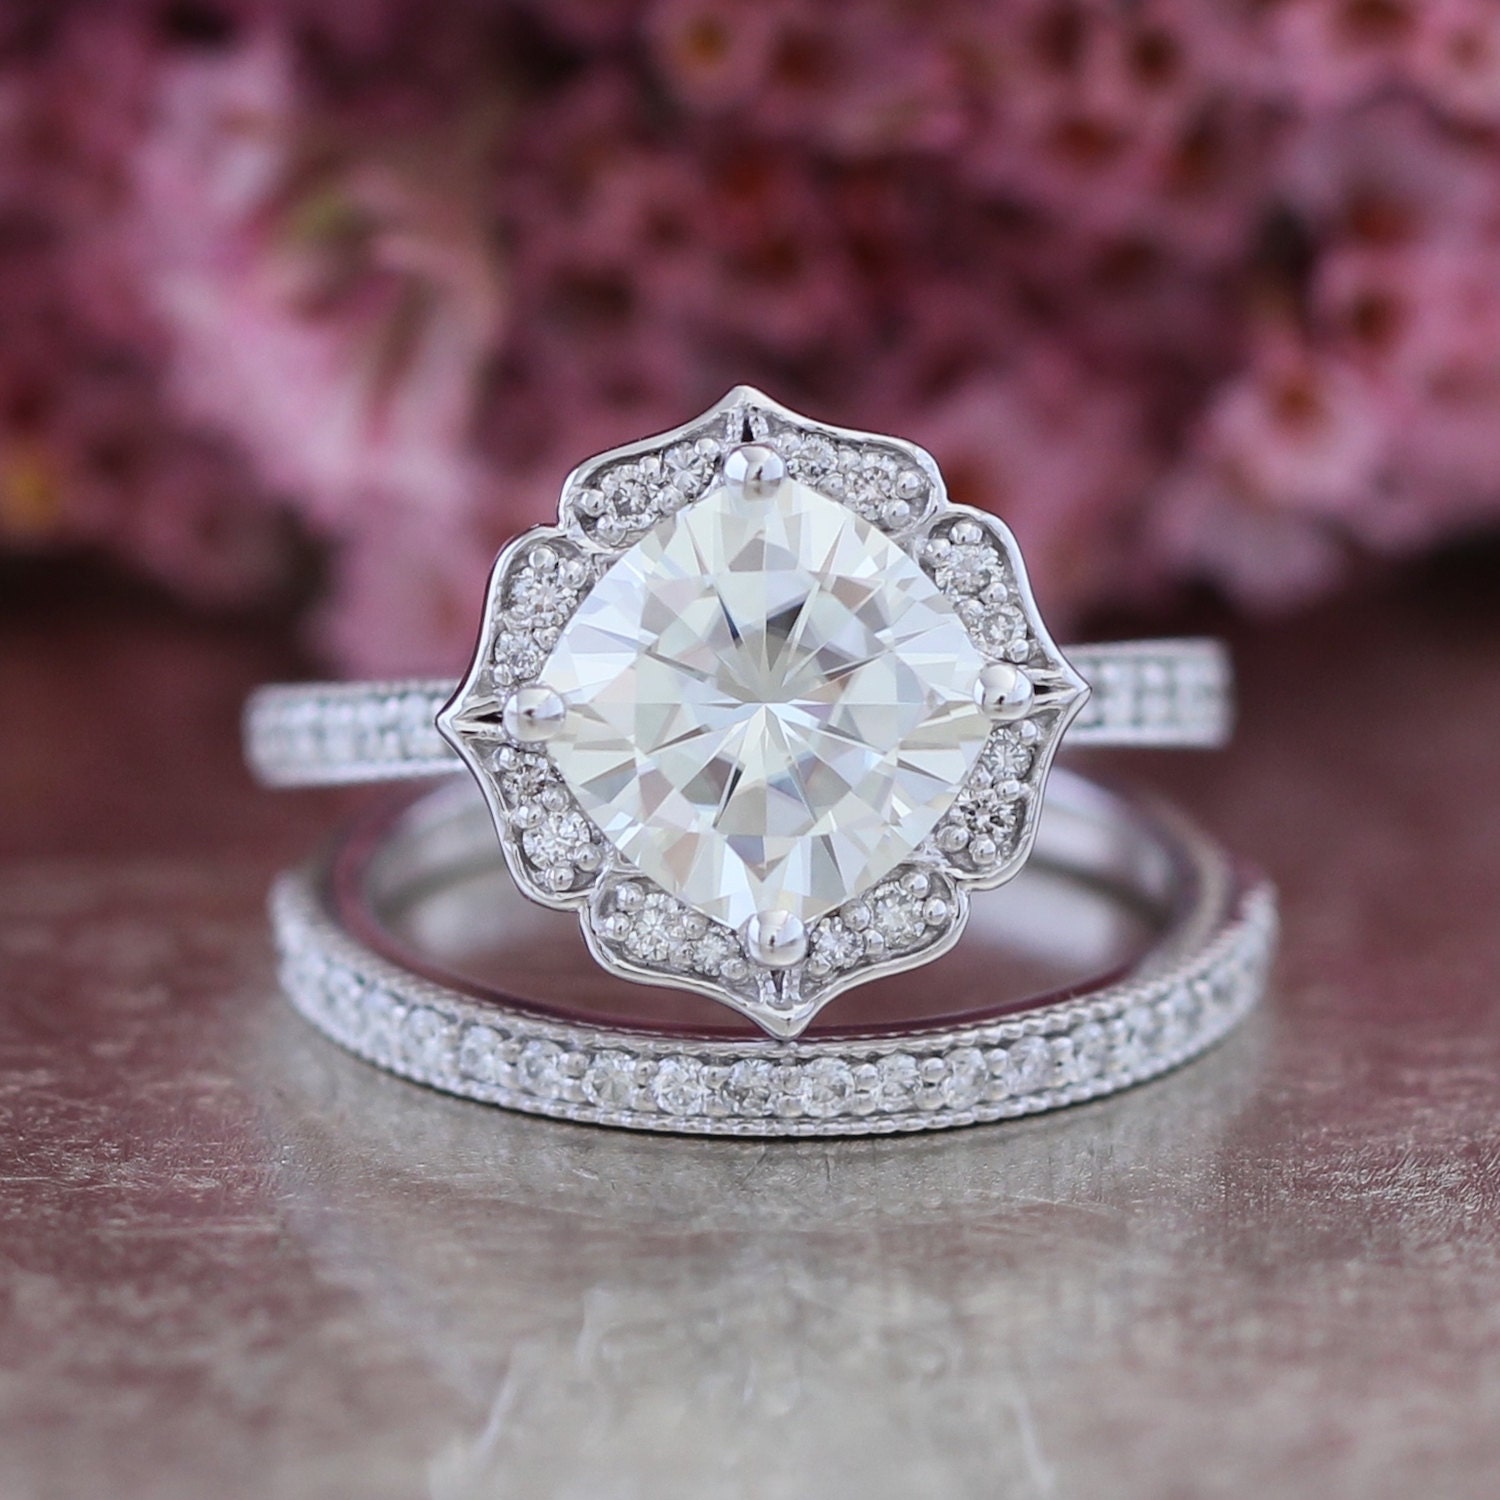 Eternity Ring Wedding Set: Bridal Set Moissanite Floral Engagement Ring And Half Eternity